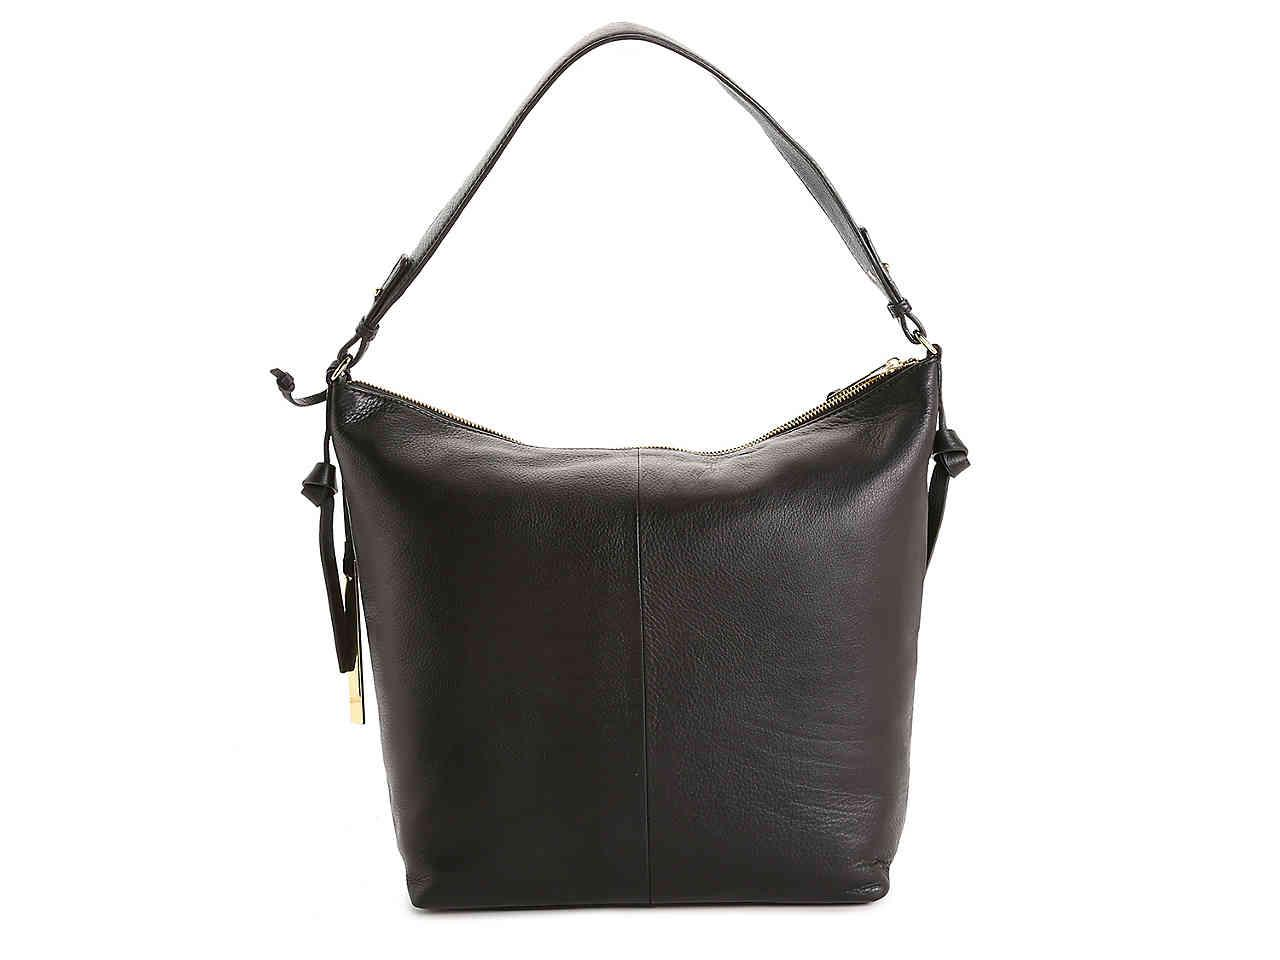 Lyst - Tahari Riley Leather Hobo Bag in Black 589c5d9c34